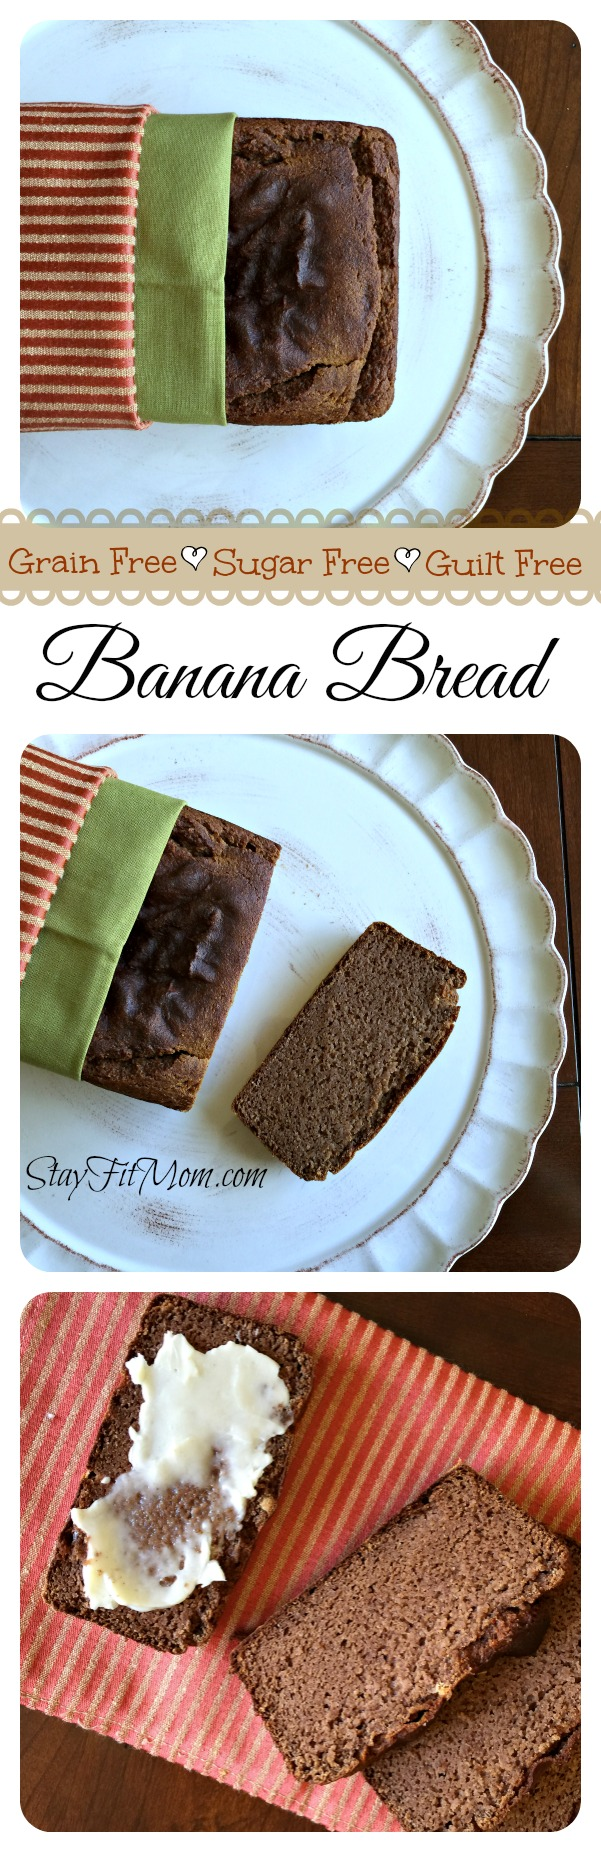 I've got to make this Paleo Banana Bread!